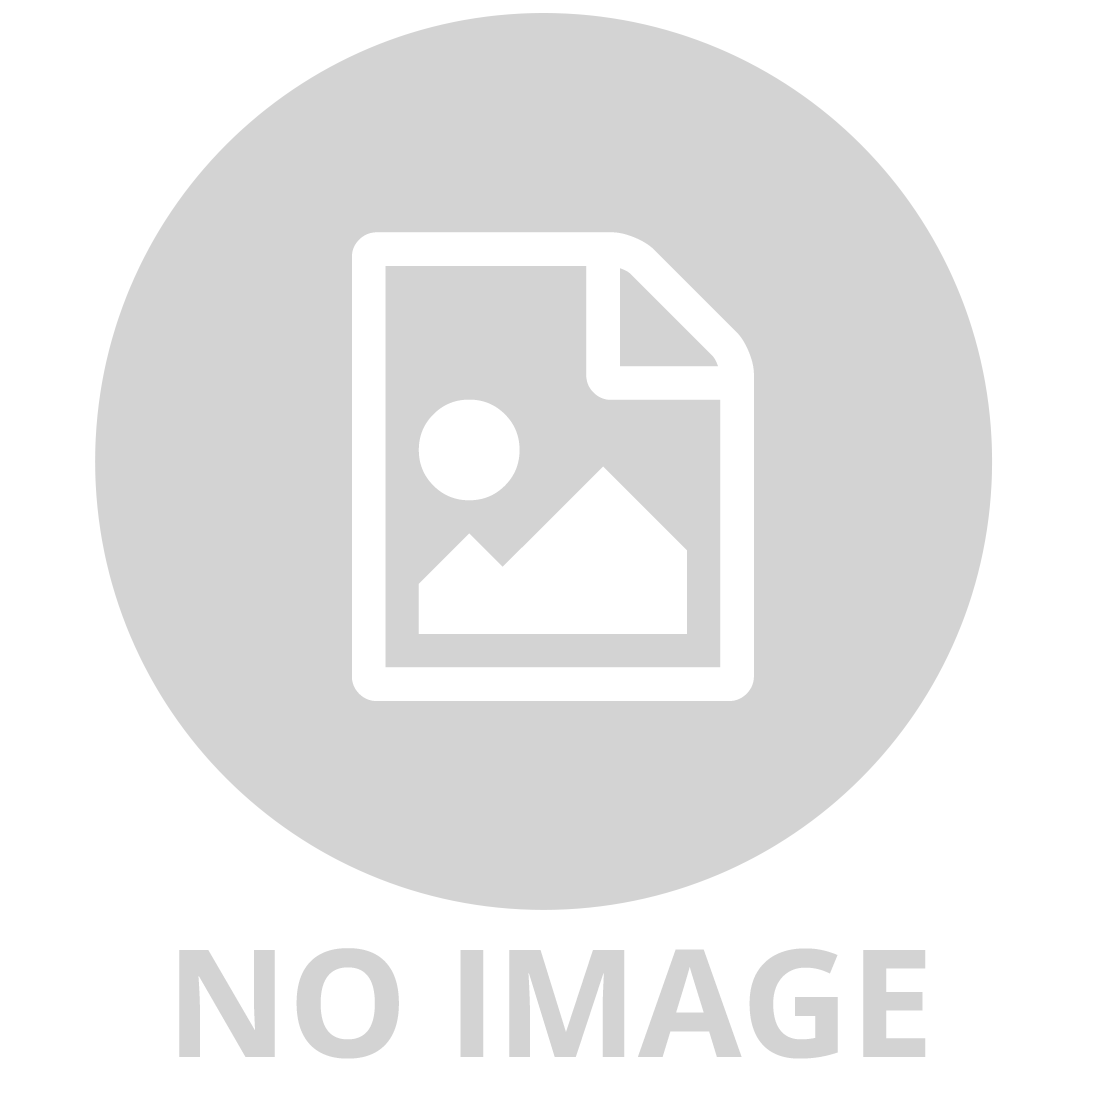 CATAN EXTENSION 5 6 PLAYER